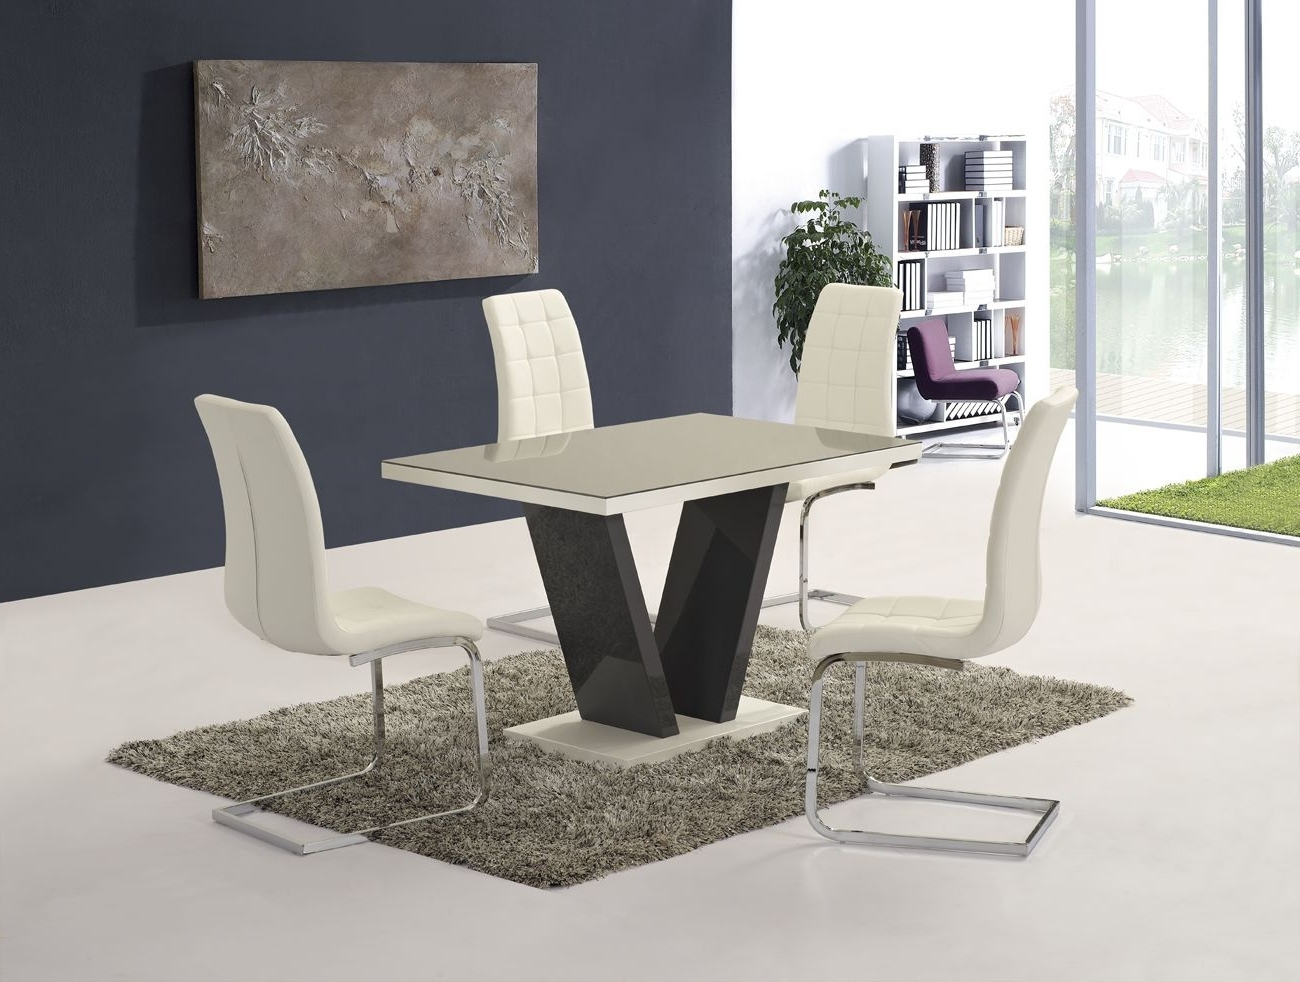 2018 Ga Vico High Gloss Grey Glass Top Designer 120 Cm Dining Set & 4 Within White Gloss Dining Tables 120Cm (Gallery 6 of 25)